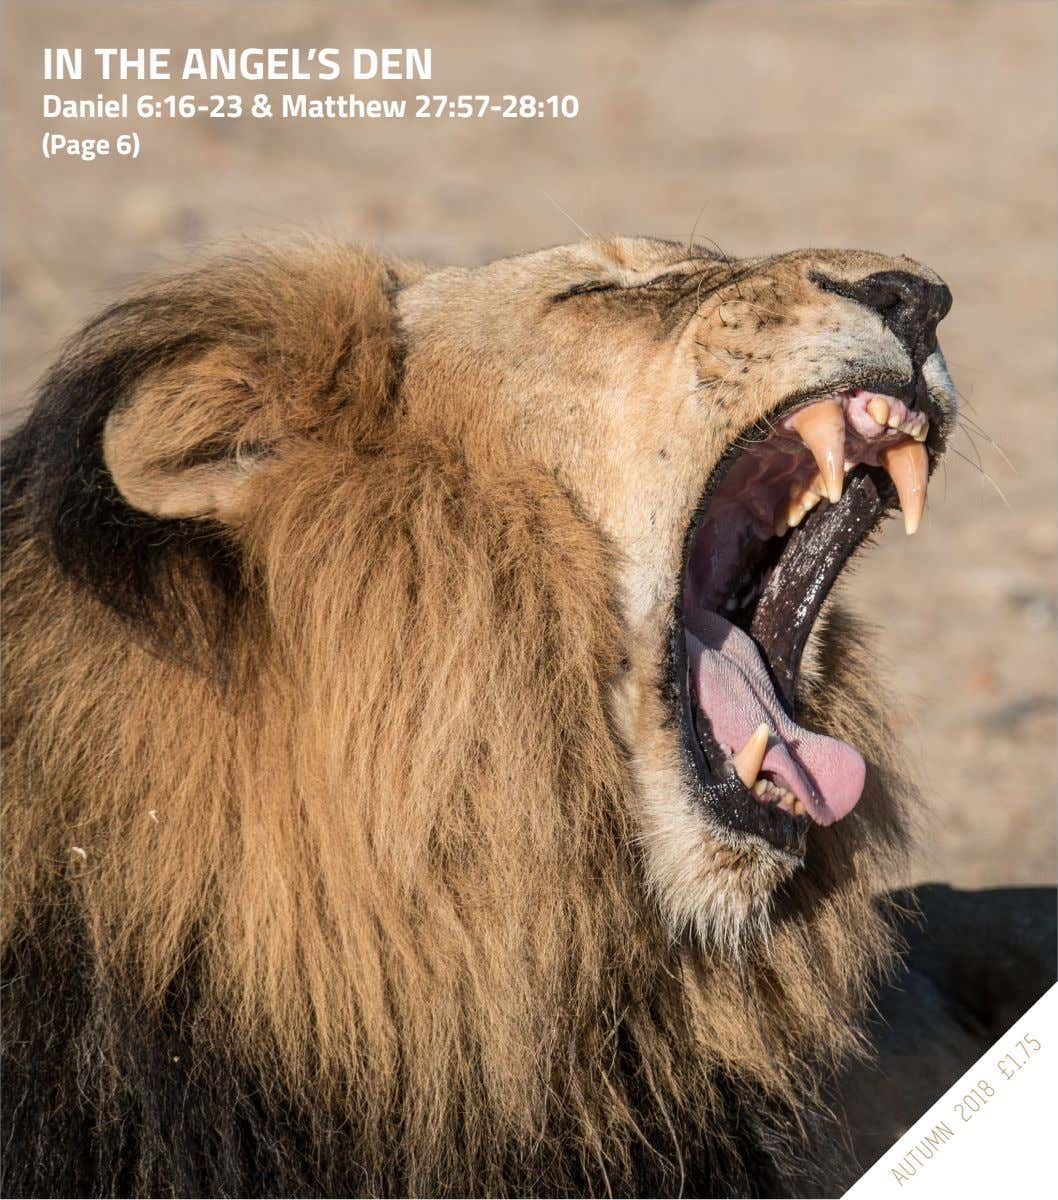 IN THE ANGEL'S DEN Daniel 6:16-23 & Matthew 27:57-28:10 (Page 6) AUTUMN 2018 £1.75